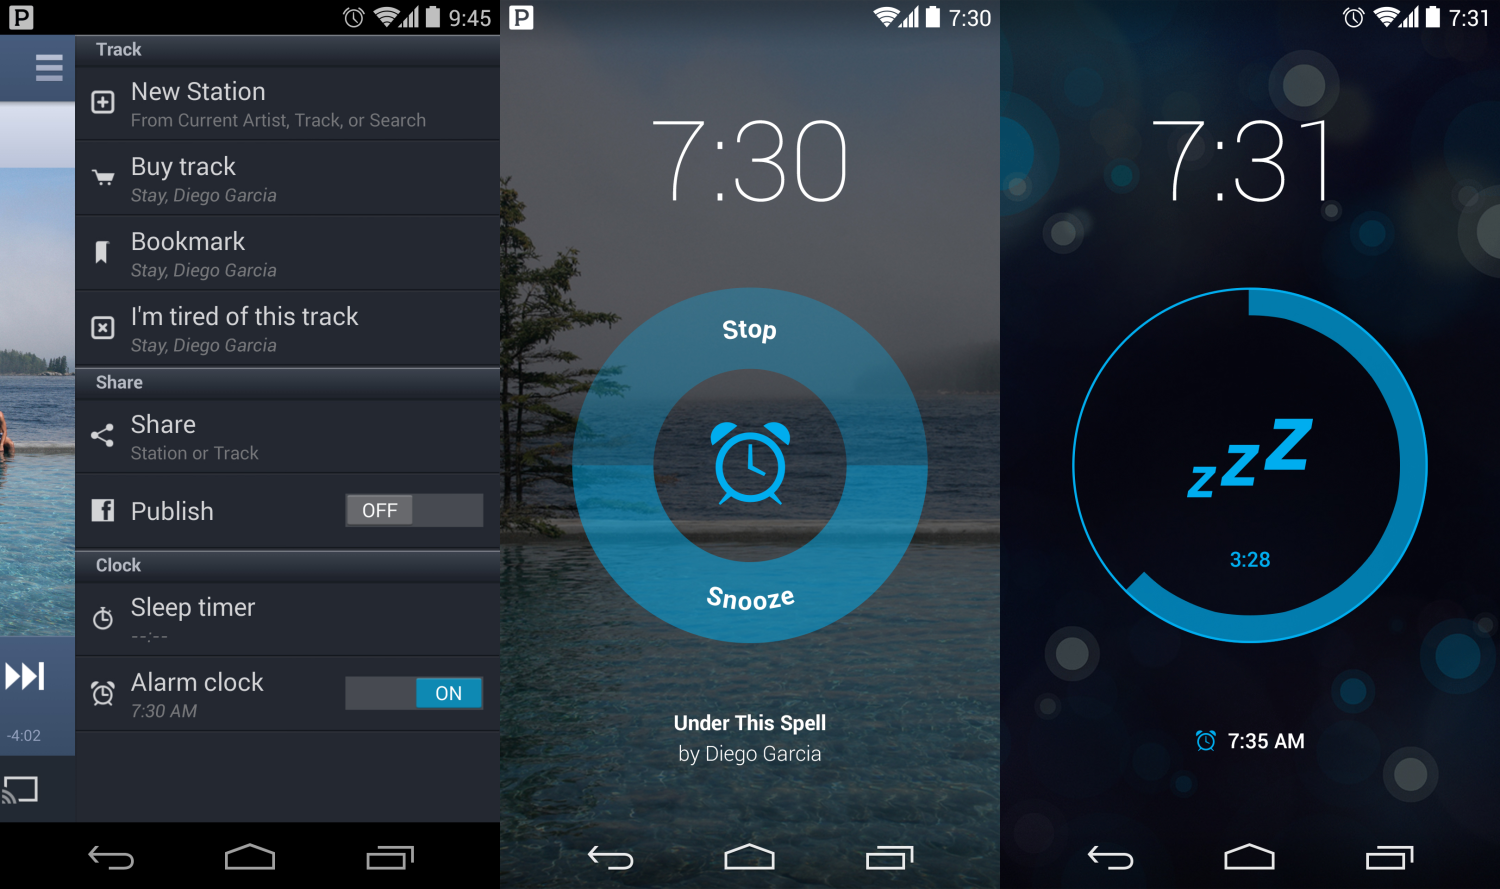 pandora android alarm Following iOS, Pandora for Android gets an alarm clock for waking up to your favorite station